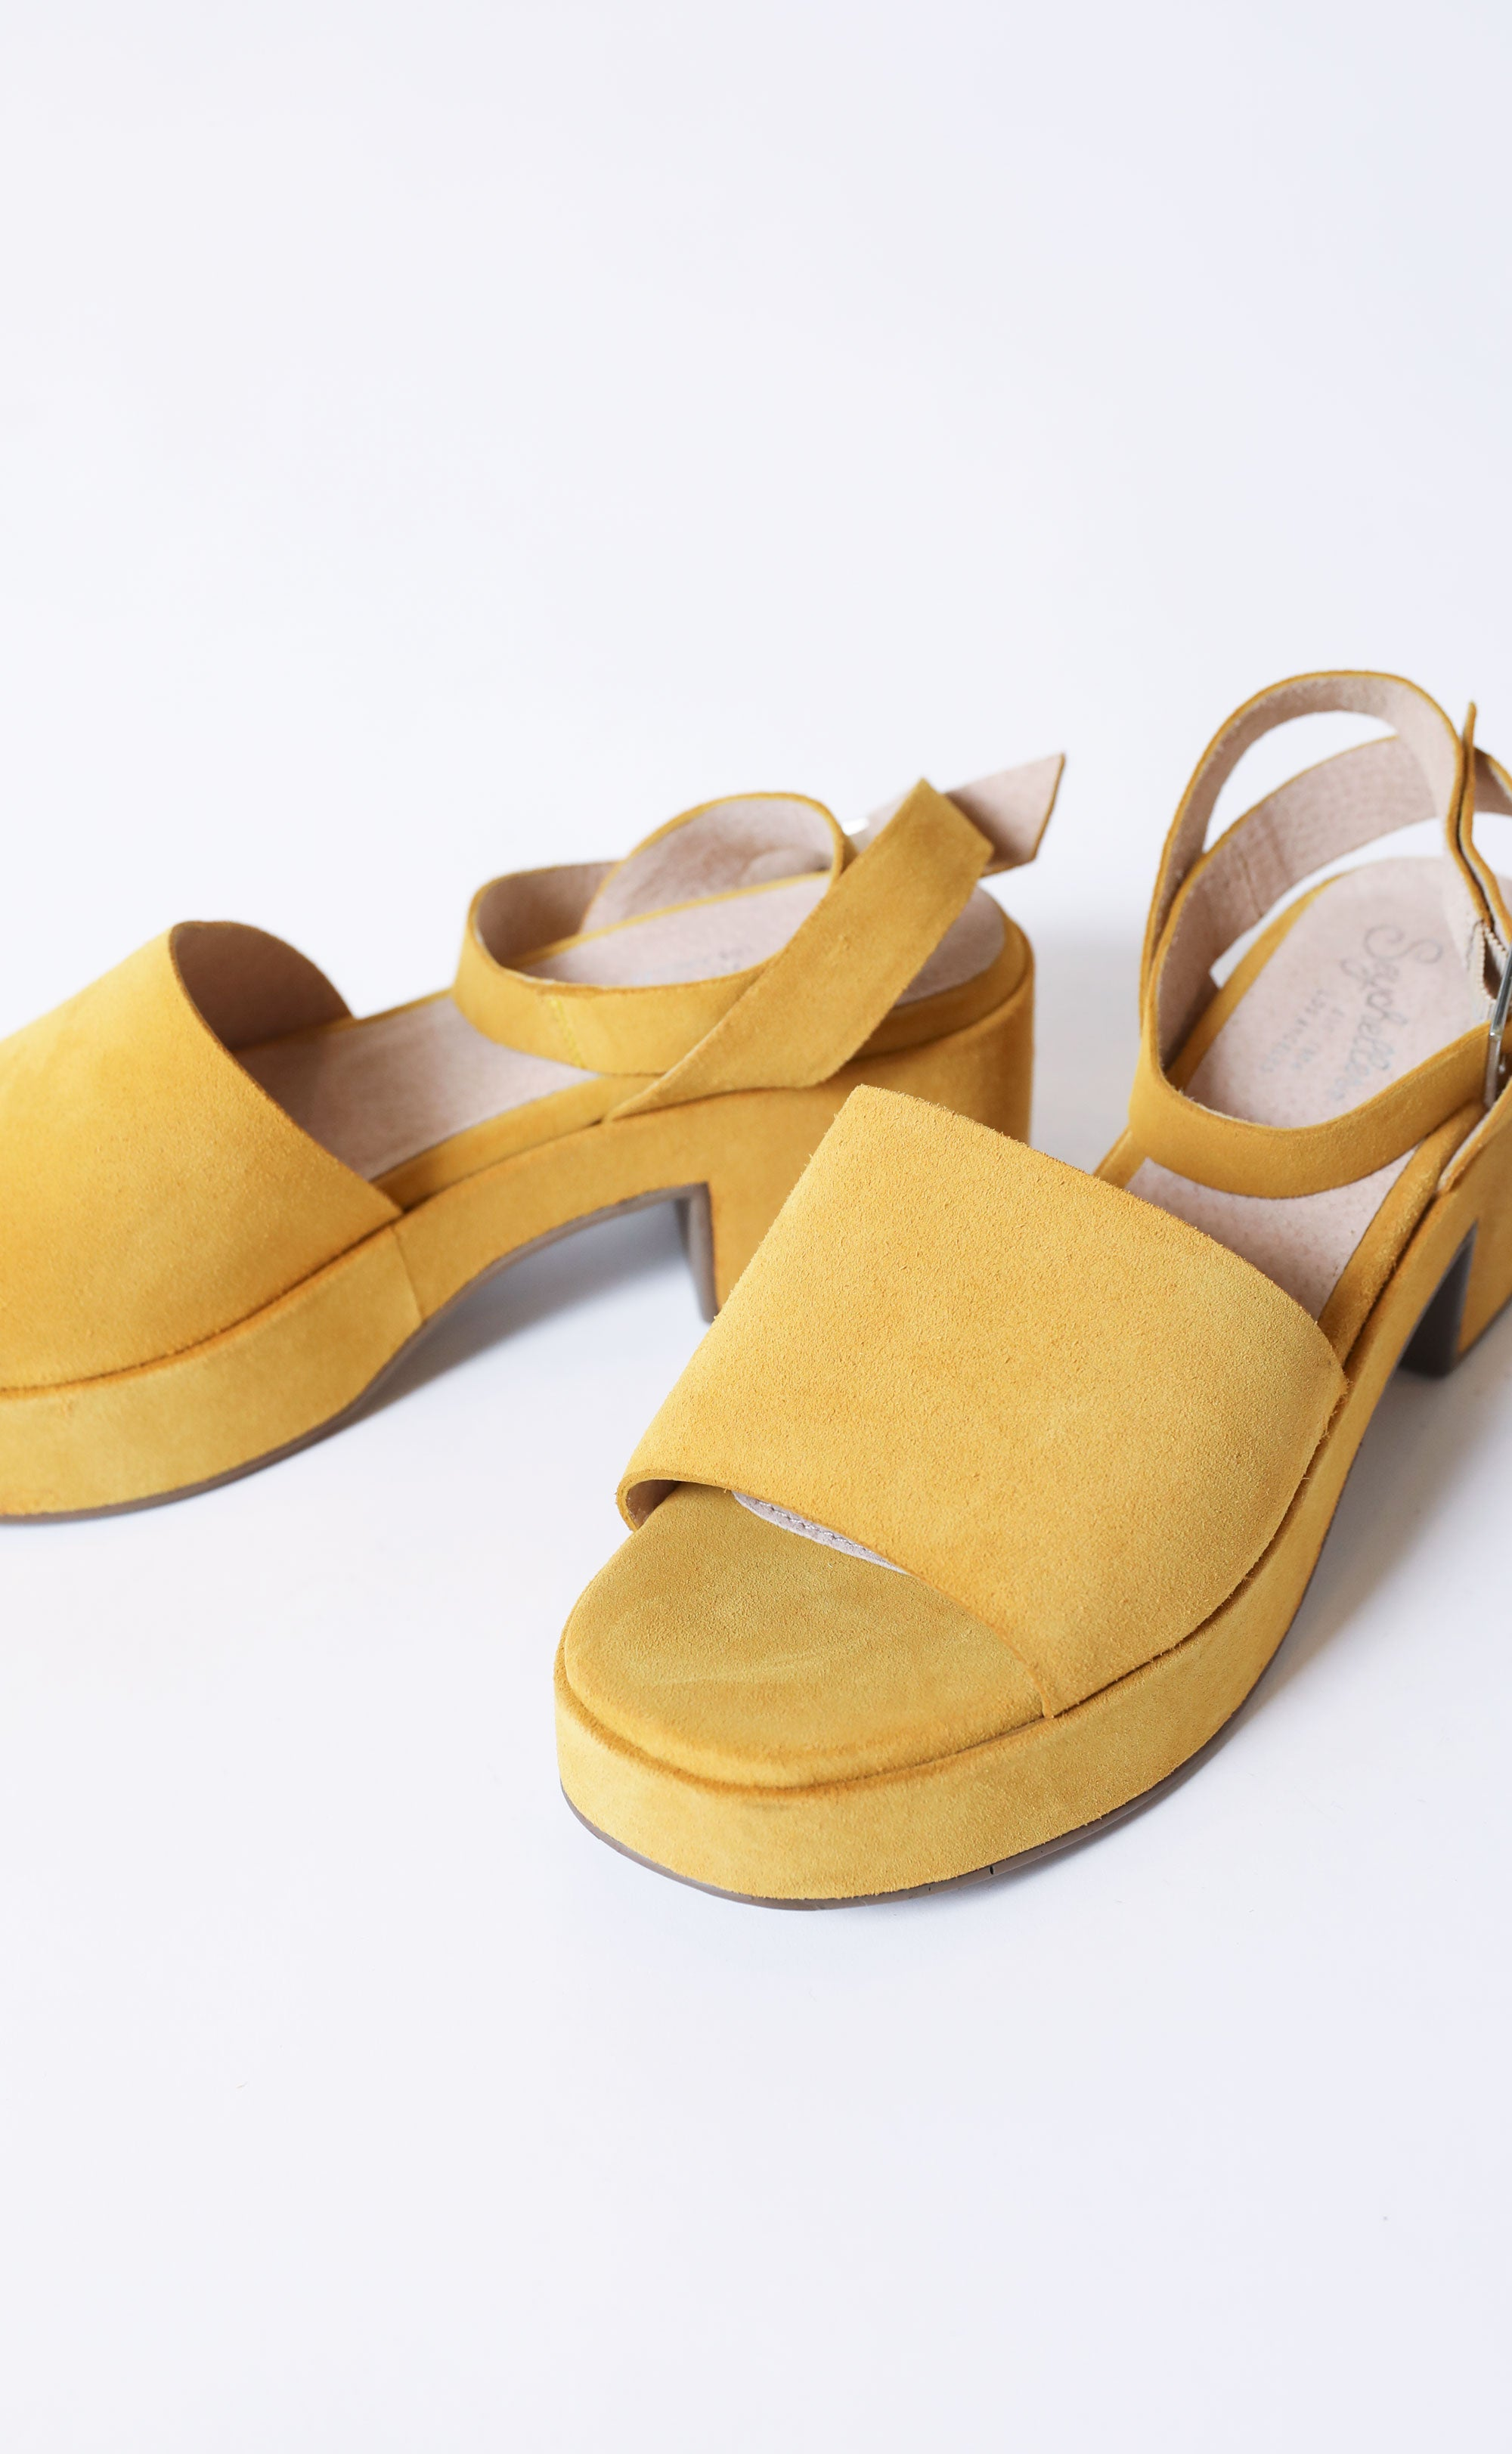 3b28508a2ee seychelles  calming influence platform sandals - yellow suede